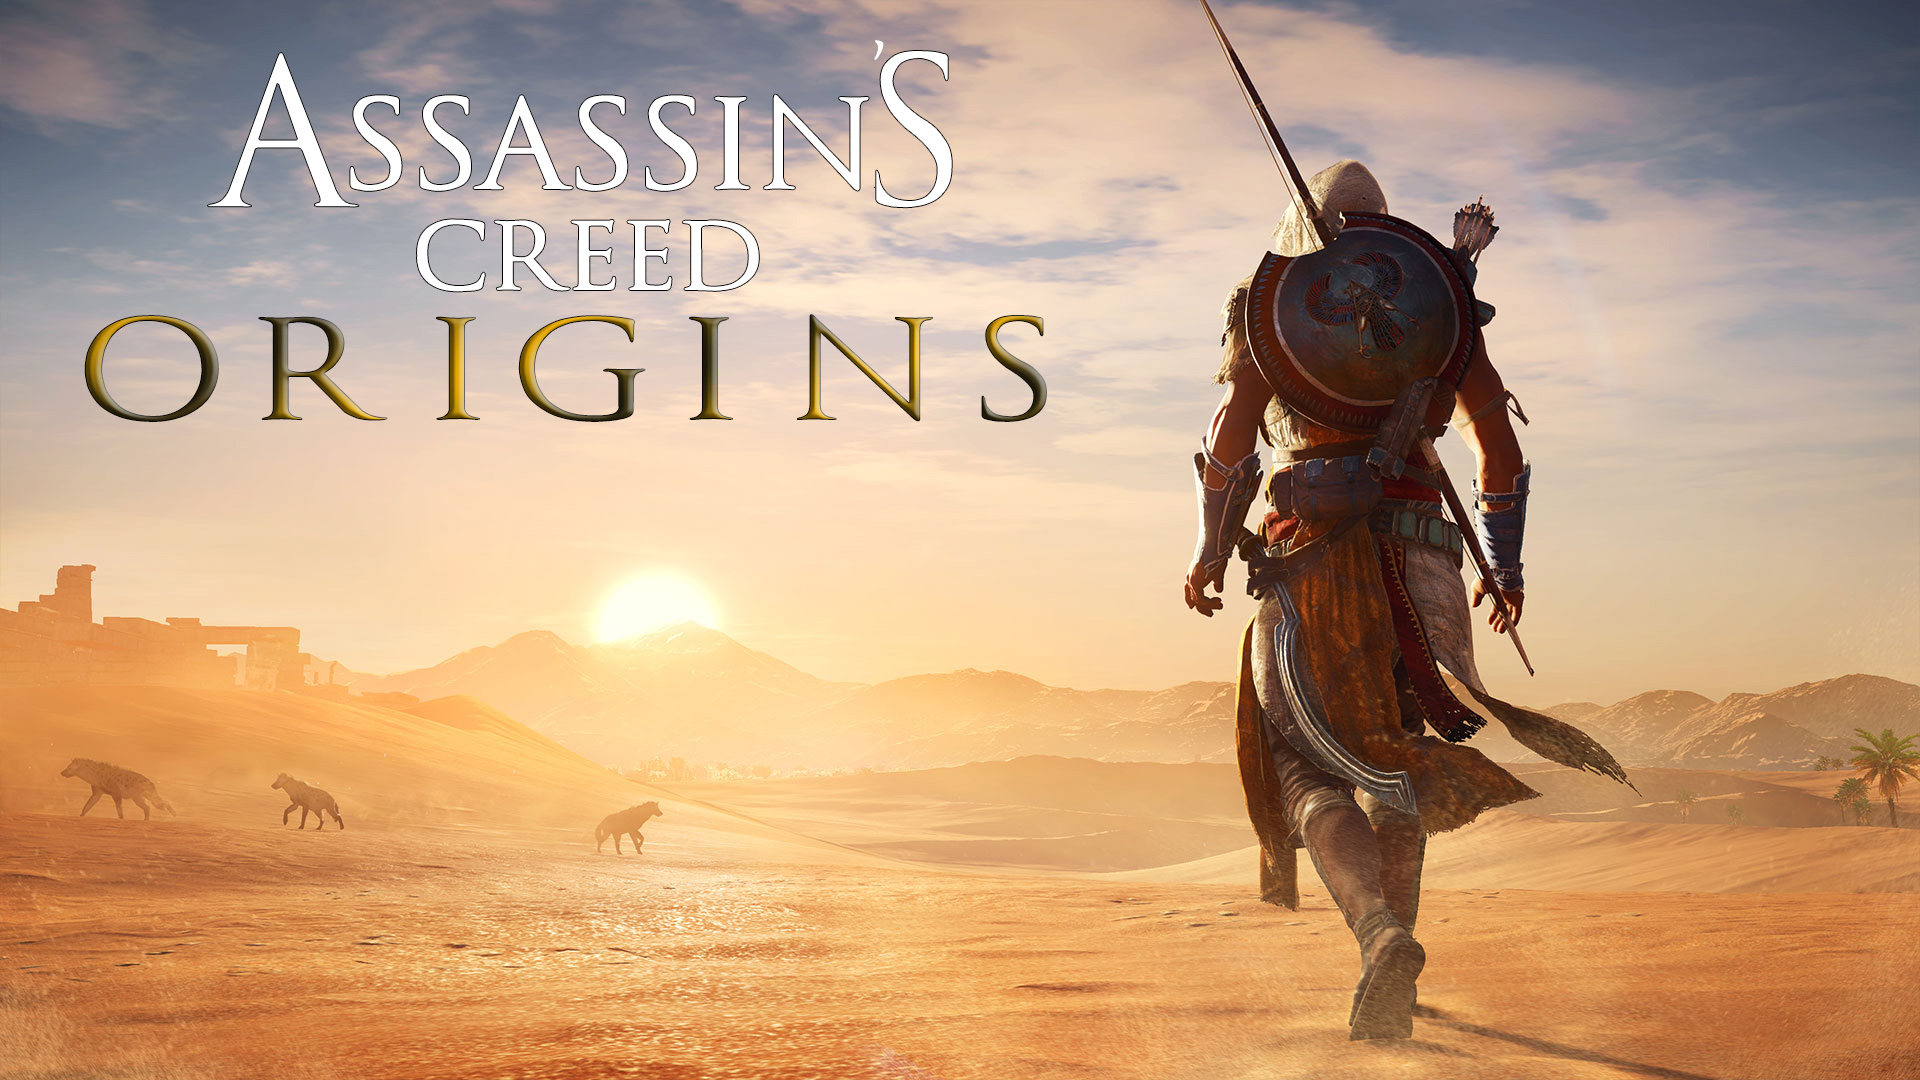 UK Chart,UK Games Chart,Assassin's Creed: Origins,Super Mario Odyssey,FIFA 18,Wolfenstein II: The New Clossus,Gran Turismo Sport,GTA V,Destiny 2,South Park Fractured But Whole,Middle Earth: Shadow of War,WWE 2K18,چارت بازیهای پرفروش,چارت انگلستان,چارت فروش هفتگی کشور انگلستان,چارت بازیهای پرفروش انگلستان,صدرنشینی بازی Assassin's Creed: Origins در چارت بازیهای پرفروش هفته انگلستان, Assassins Creed: Origins